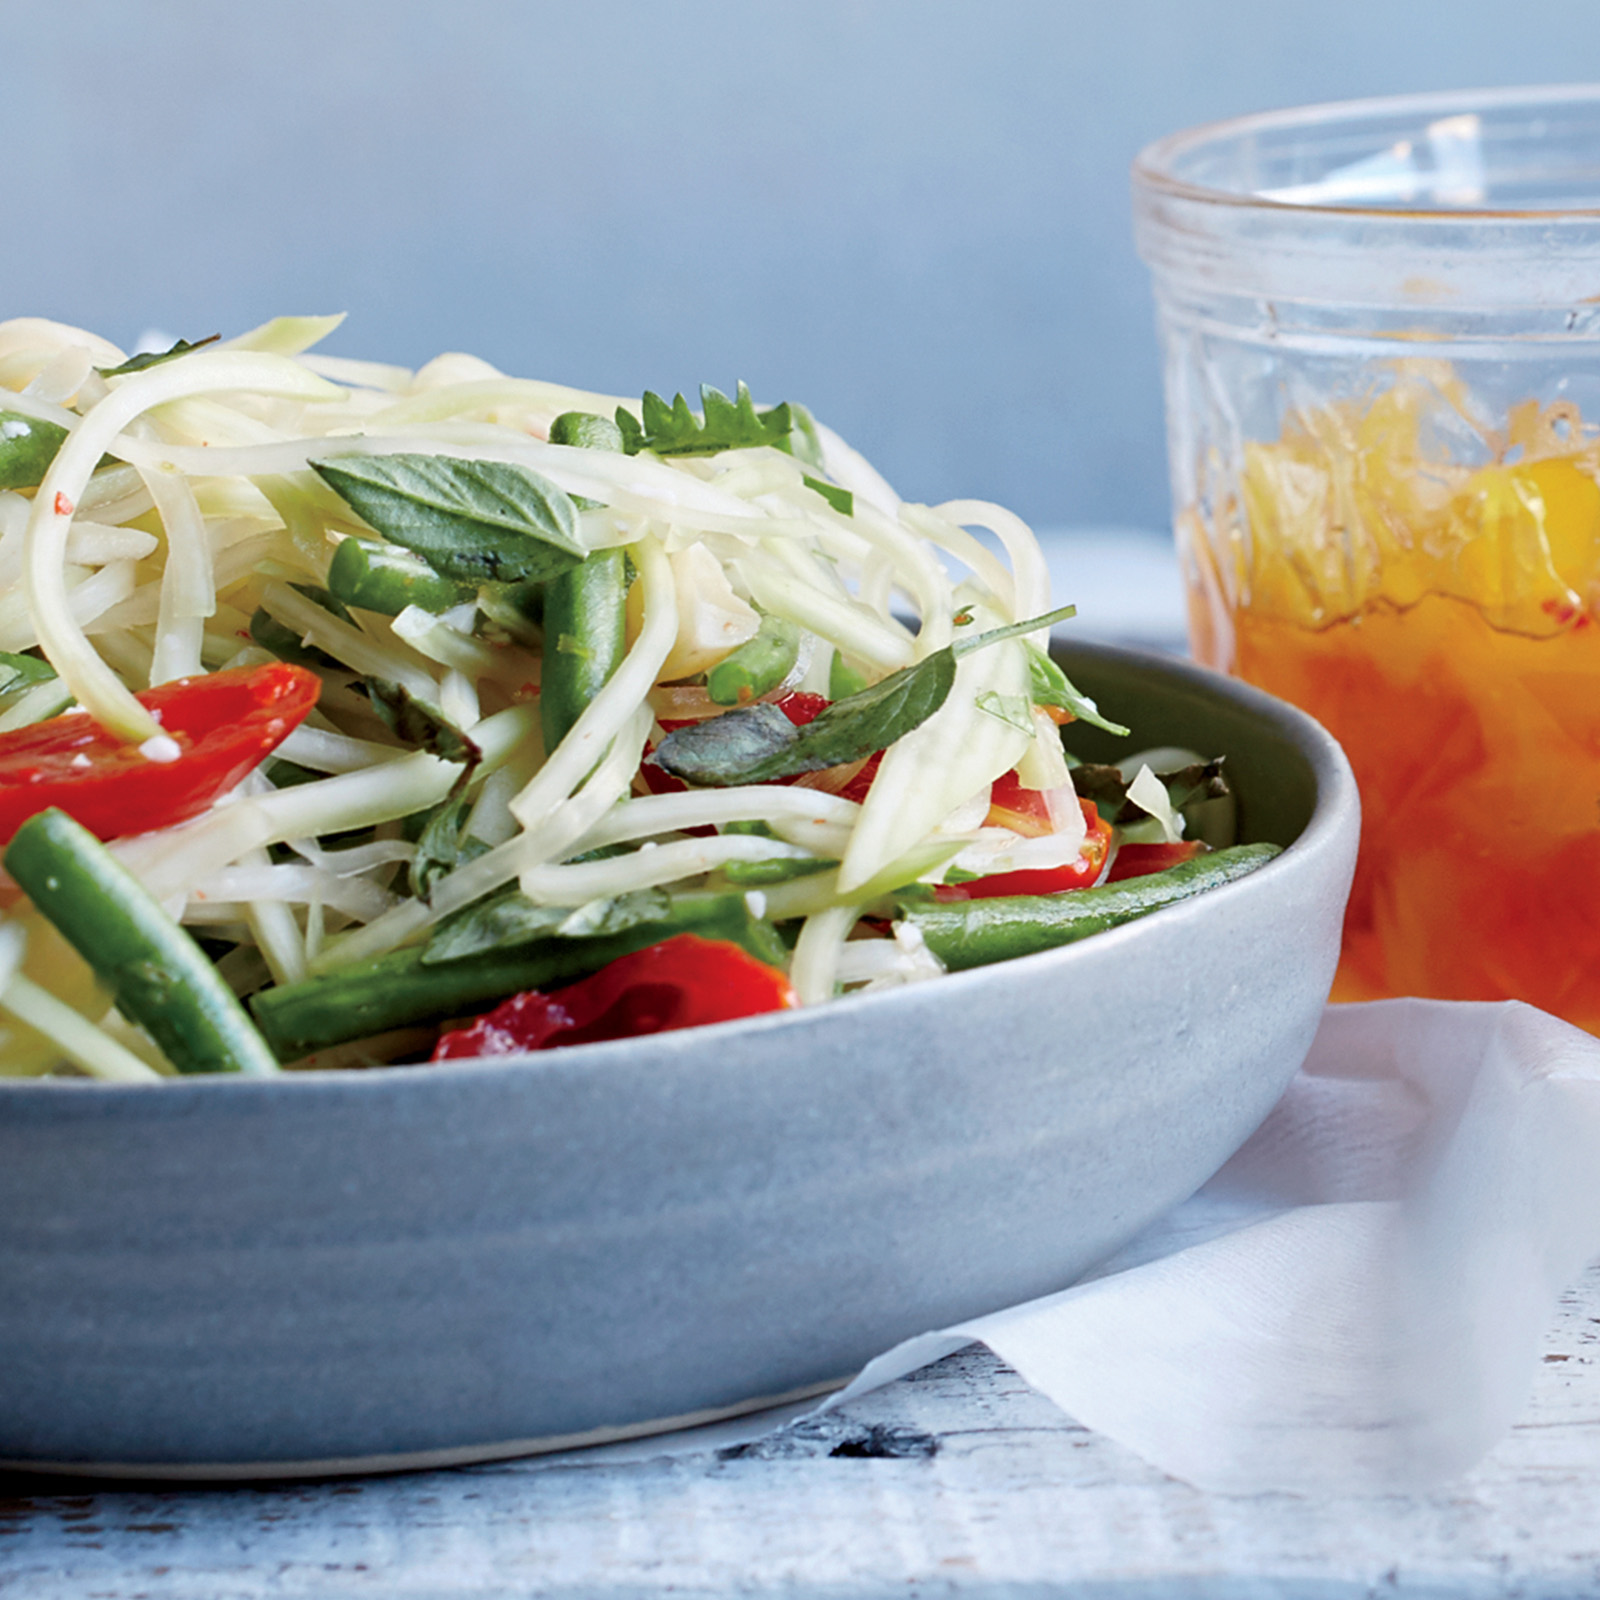 Green Papaya Salad with Tomatoes and Basil